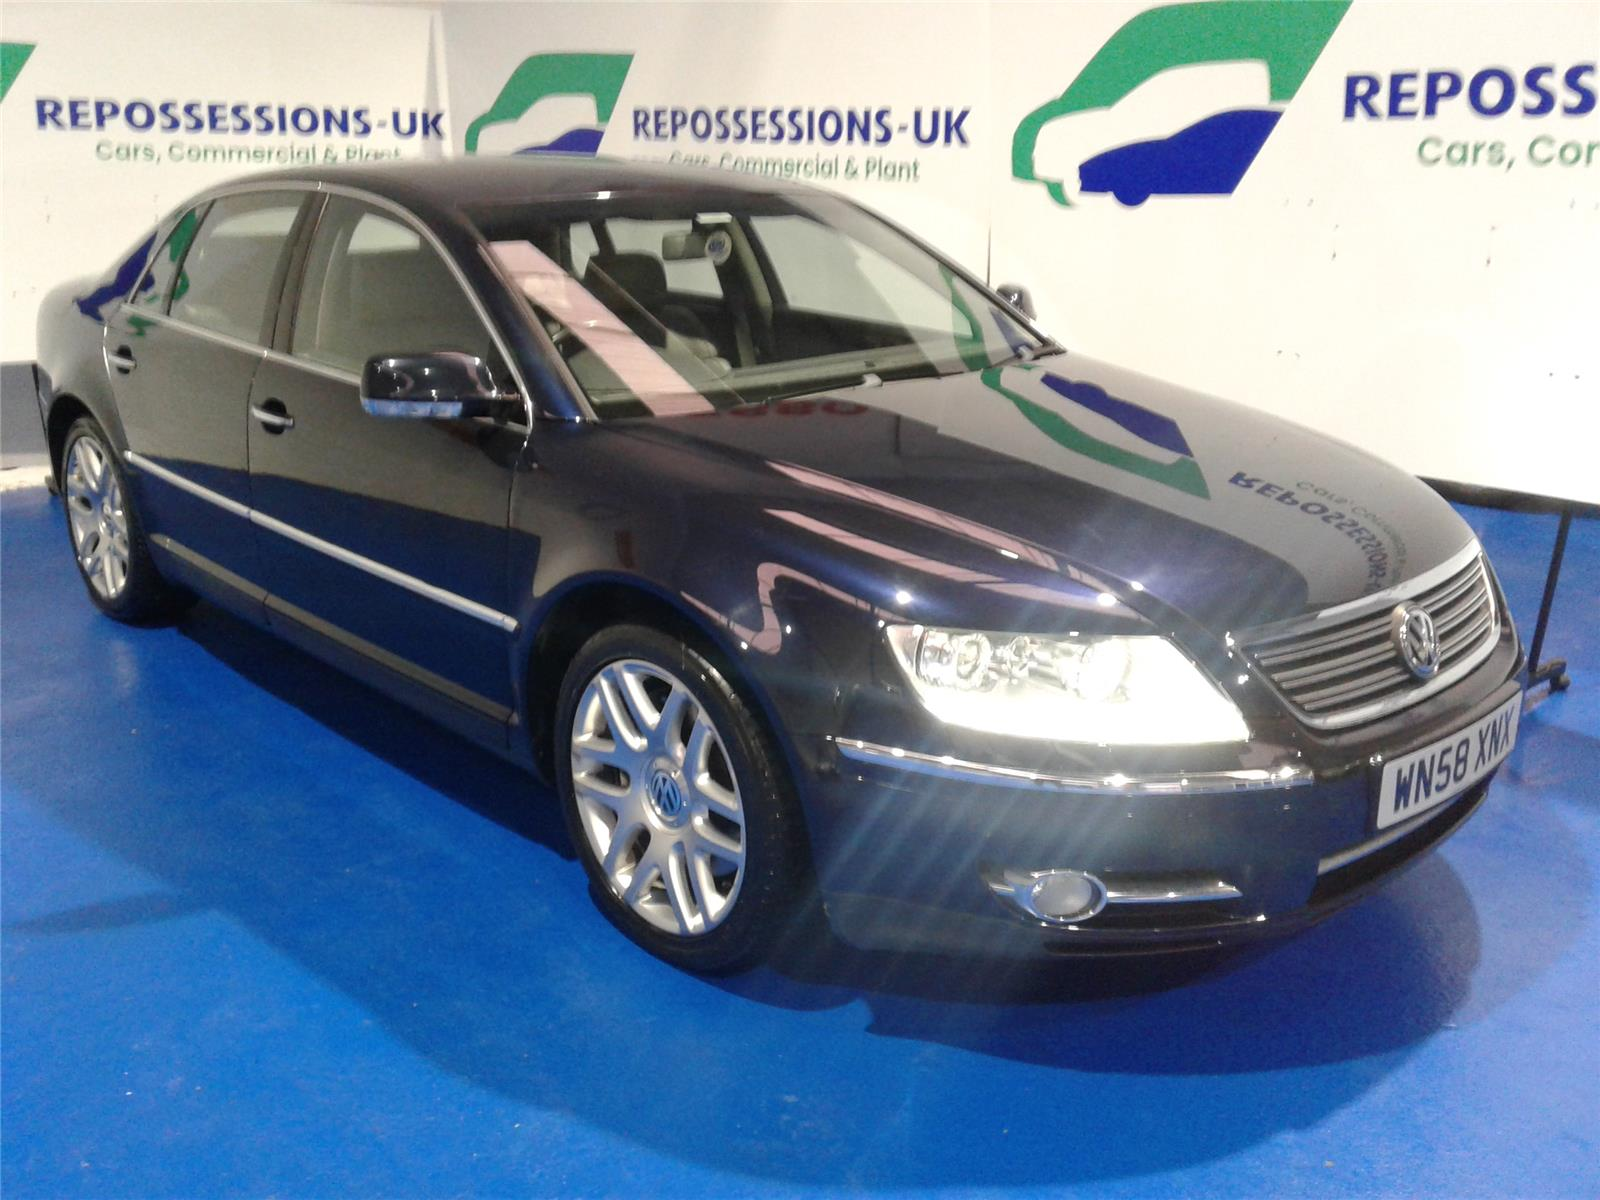 2008 VOLKSWAGEN PHAETON V6 TDI 4MOTION 5 SEATS 2967 DIESEL AUTOMATIC 6 Speed 4 DOOR SALOON